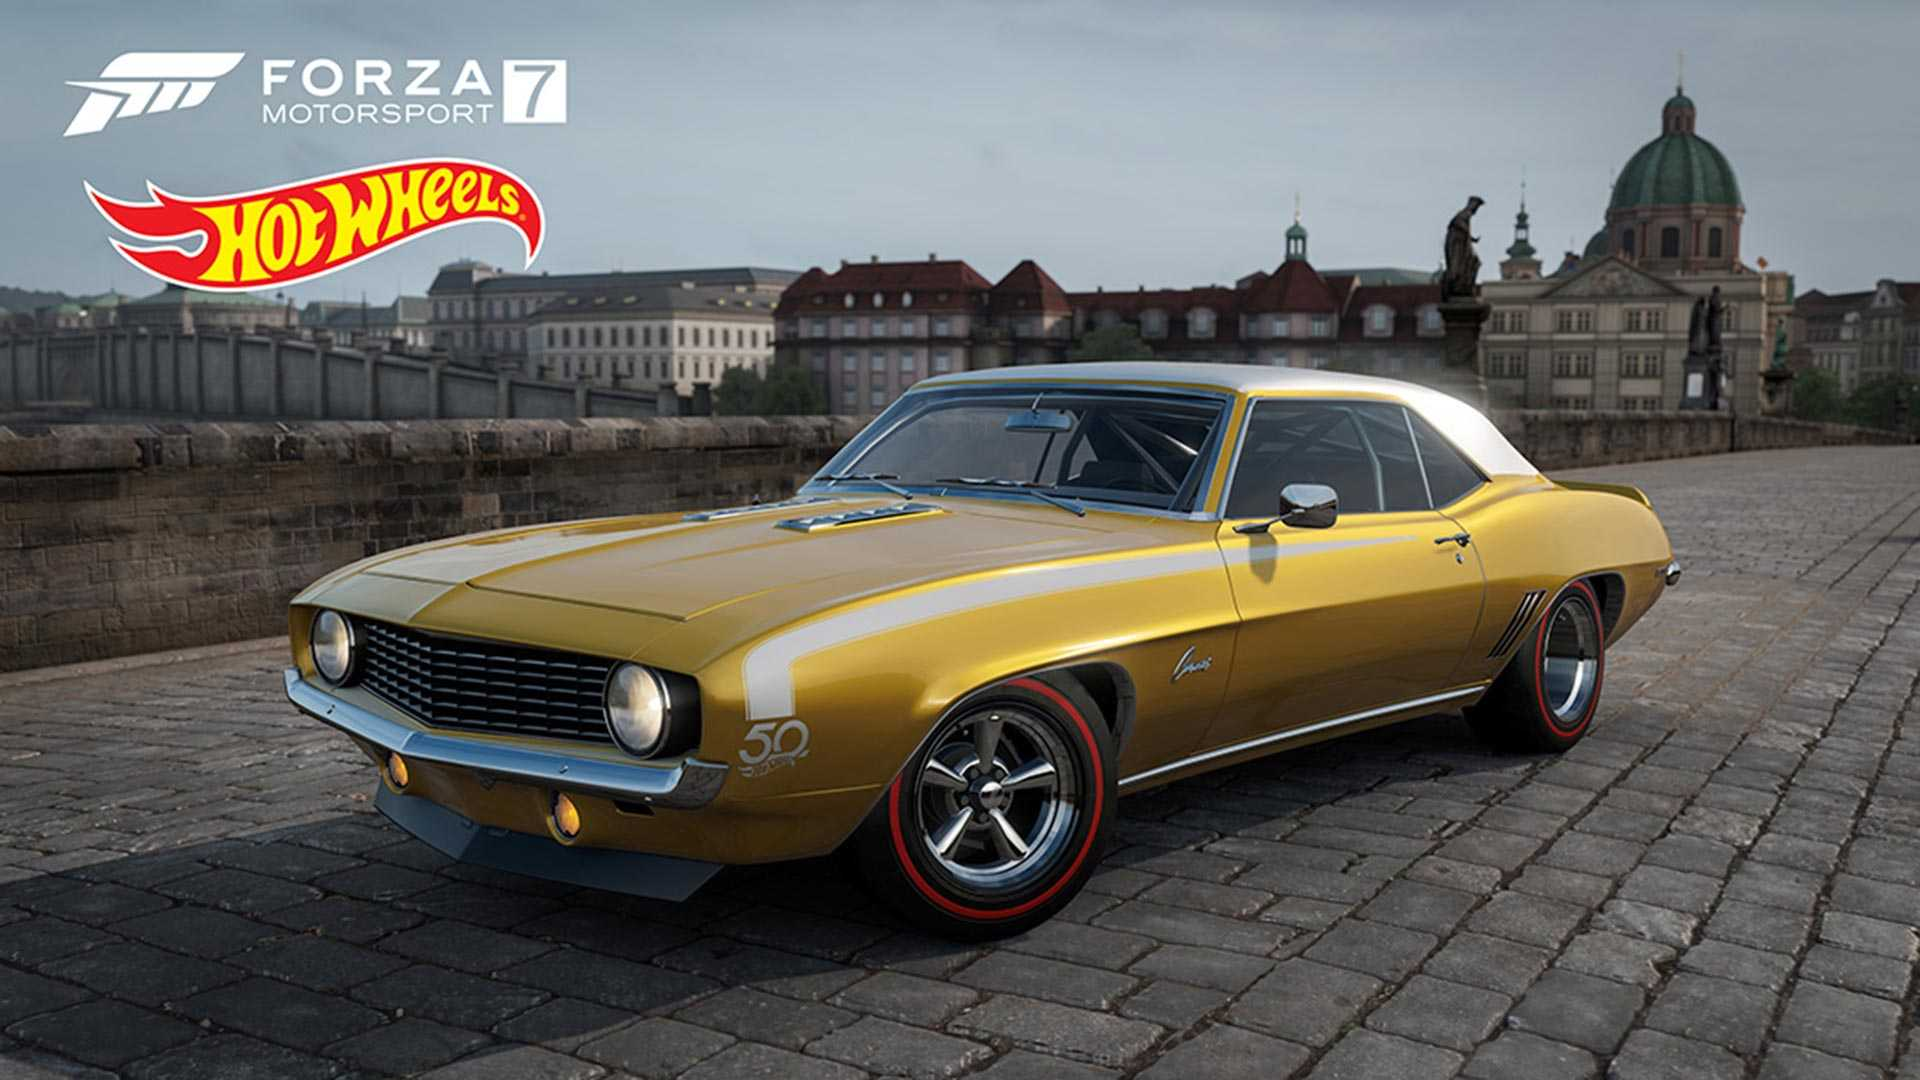 Forza Motorsport 7 Hot Wheels Pack (5)